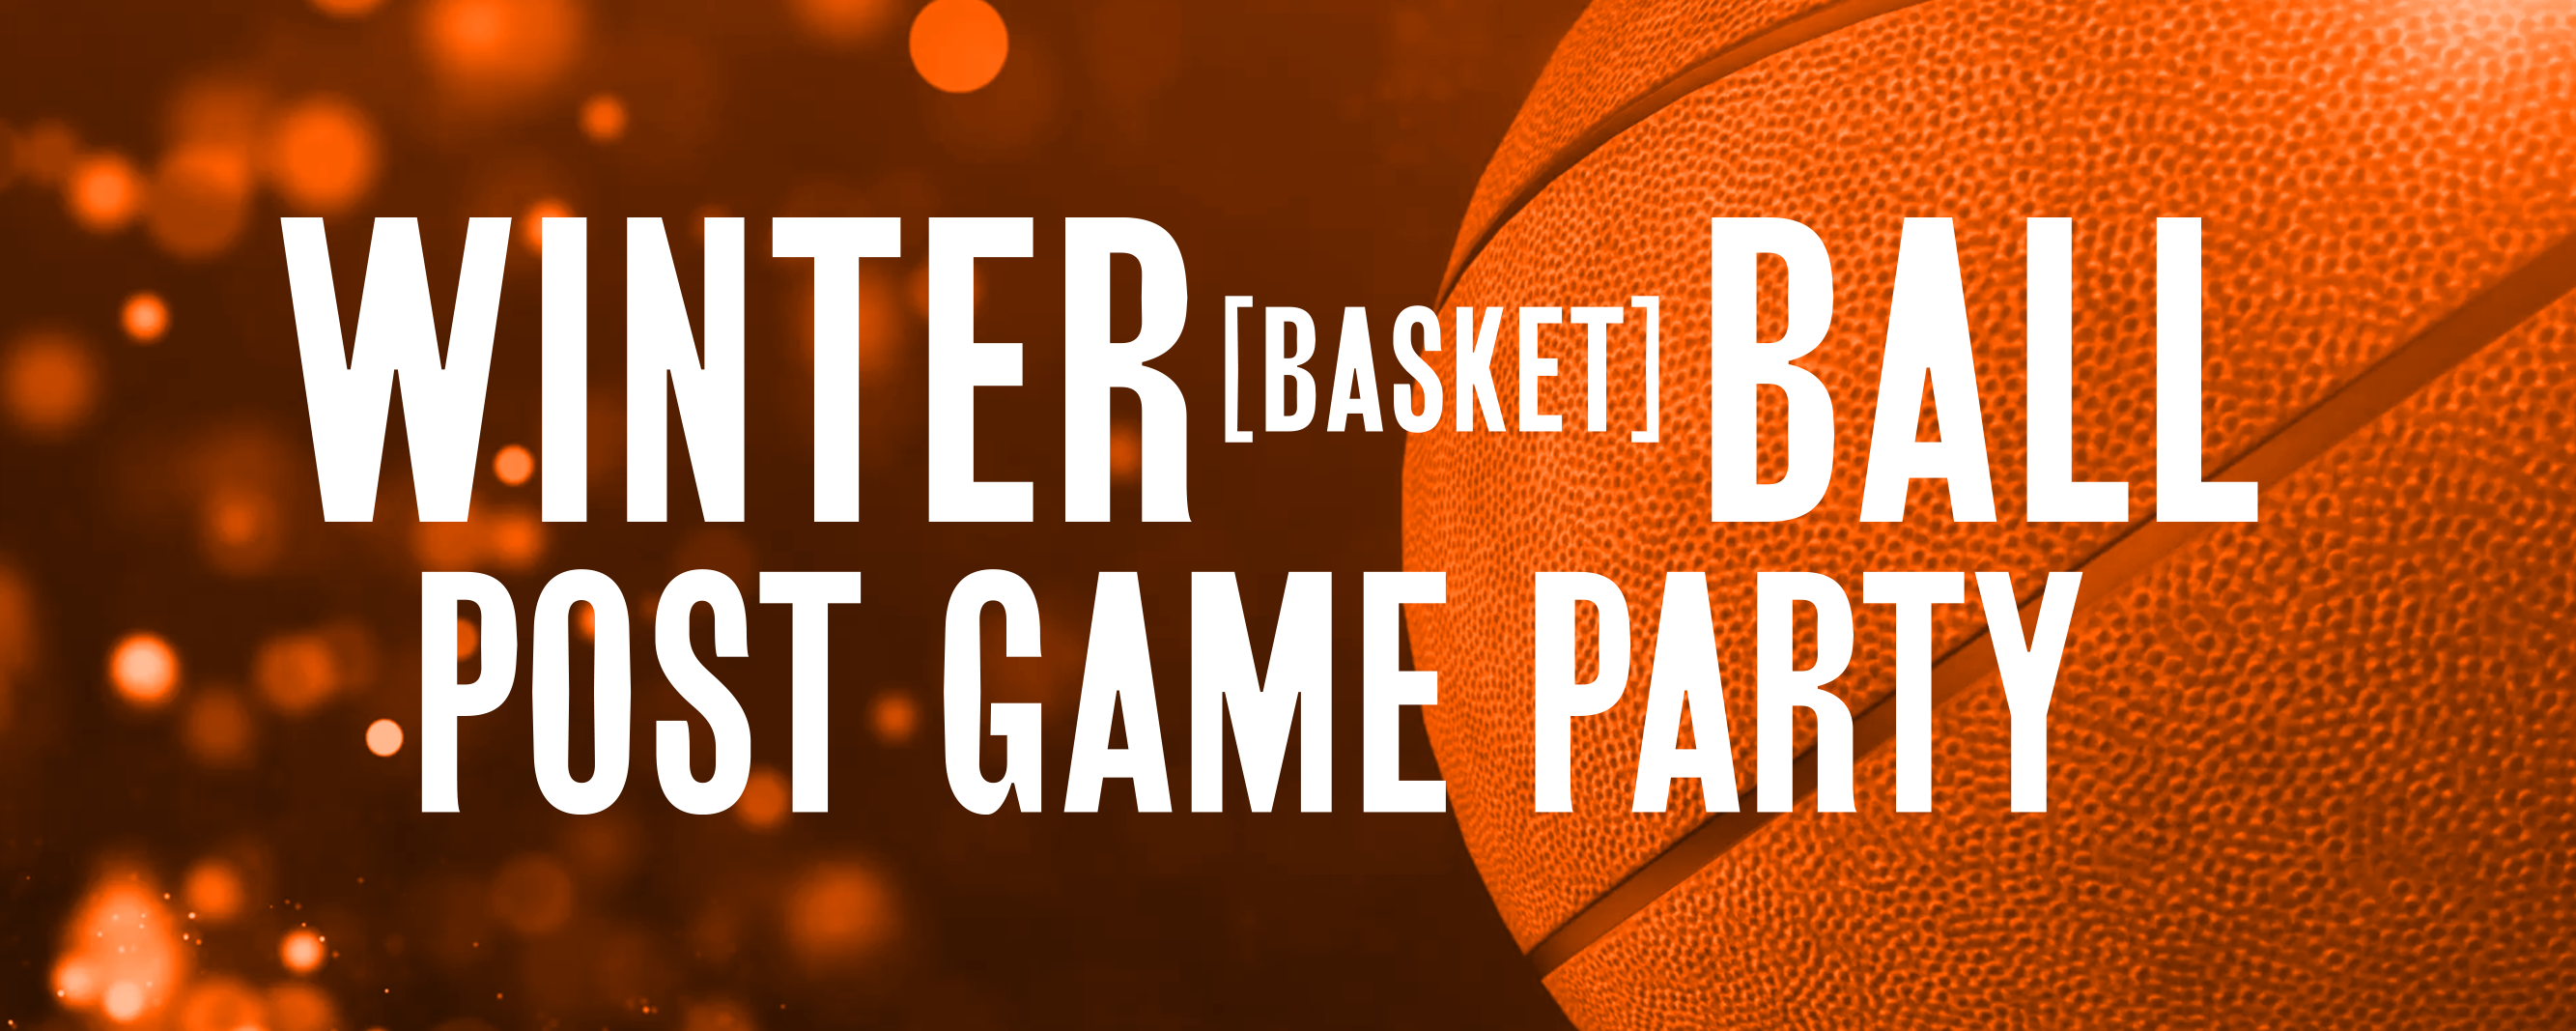 Winter Basket Ball Post Game Partyのバナー画像